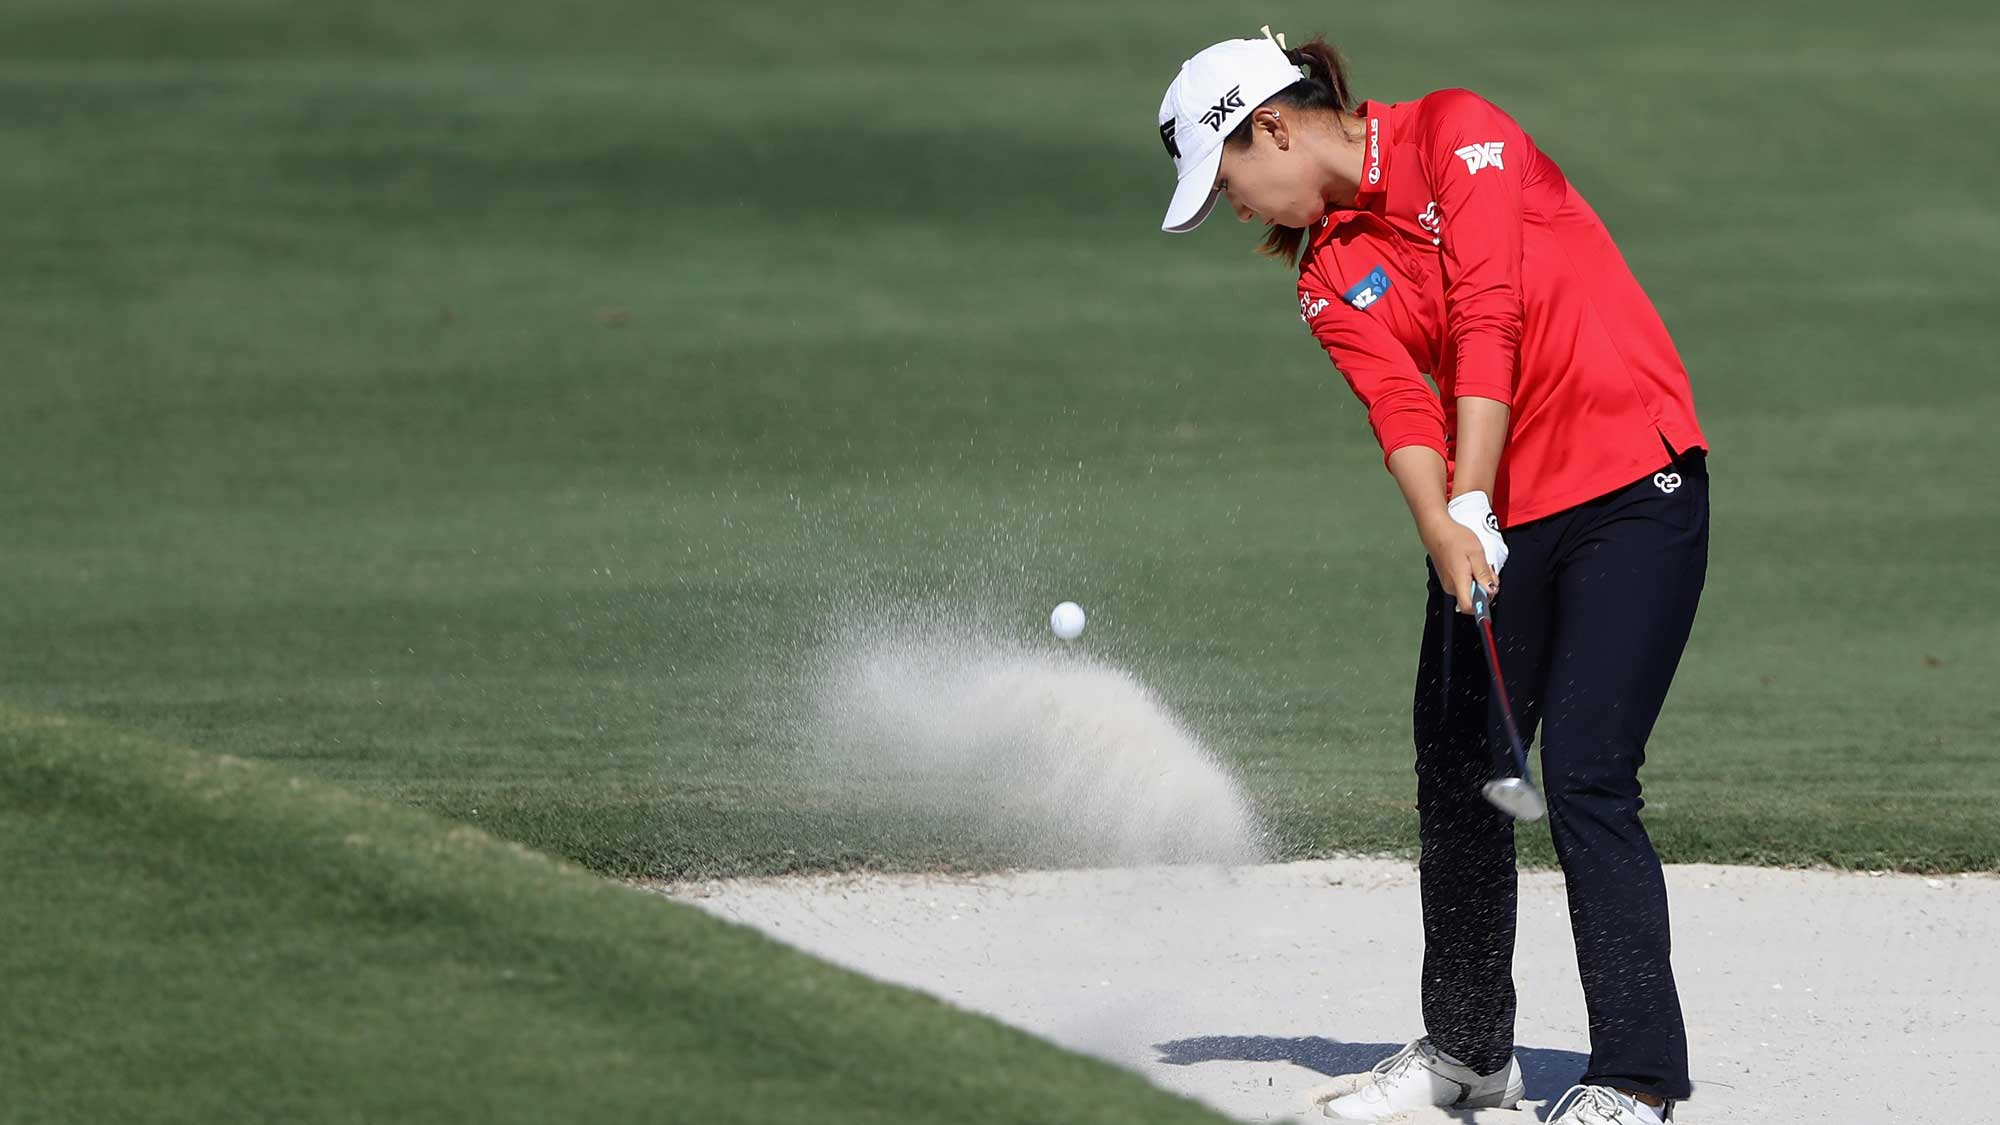 Lydia Ko of New Zealand plays a shot from a bunker on the sixth hole during round two of the CME Group Tour Championship